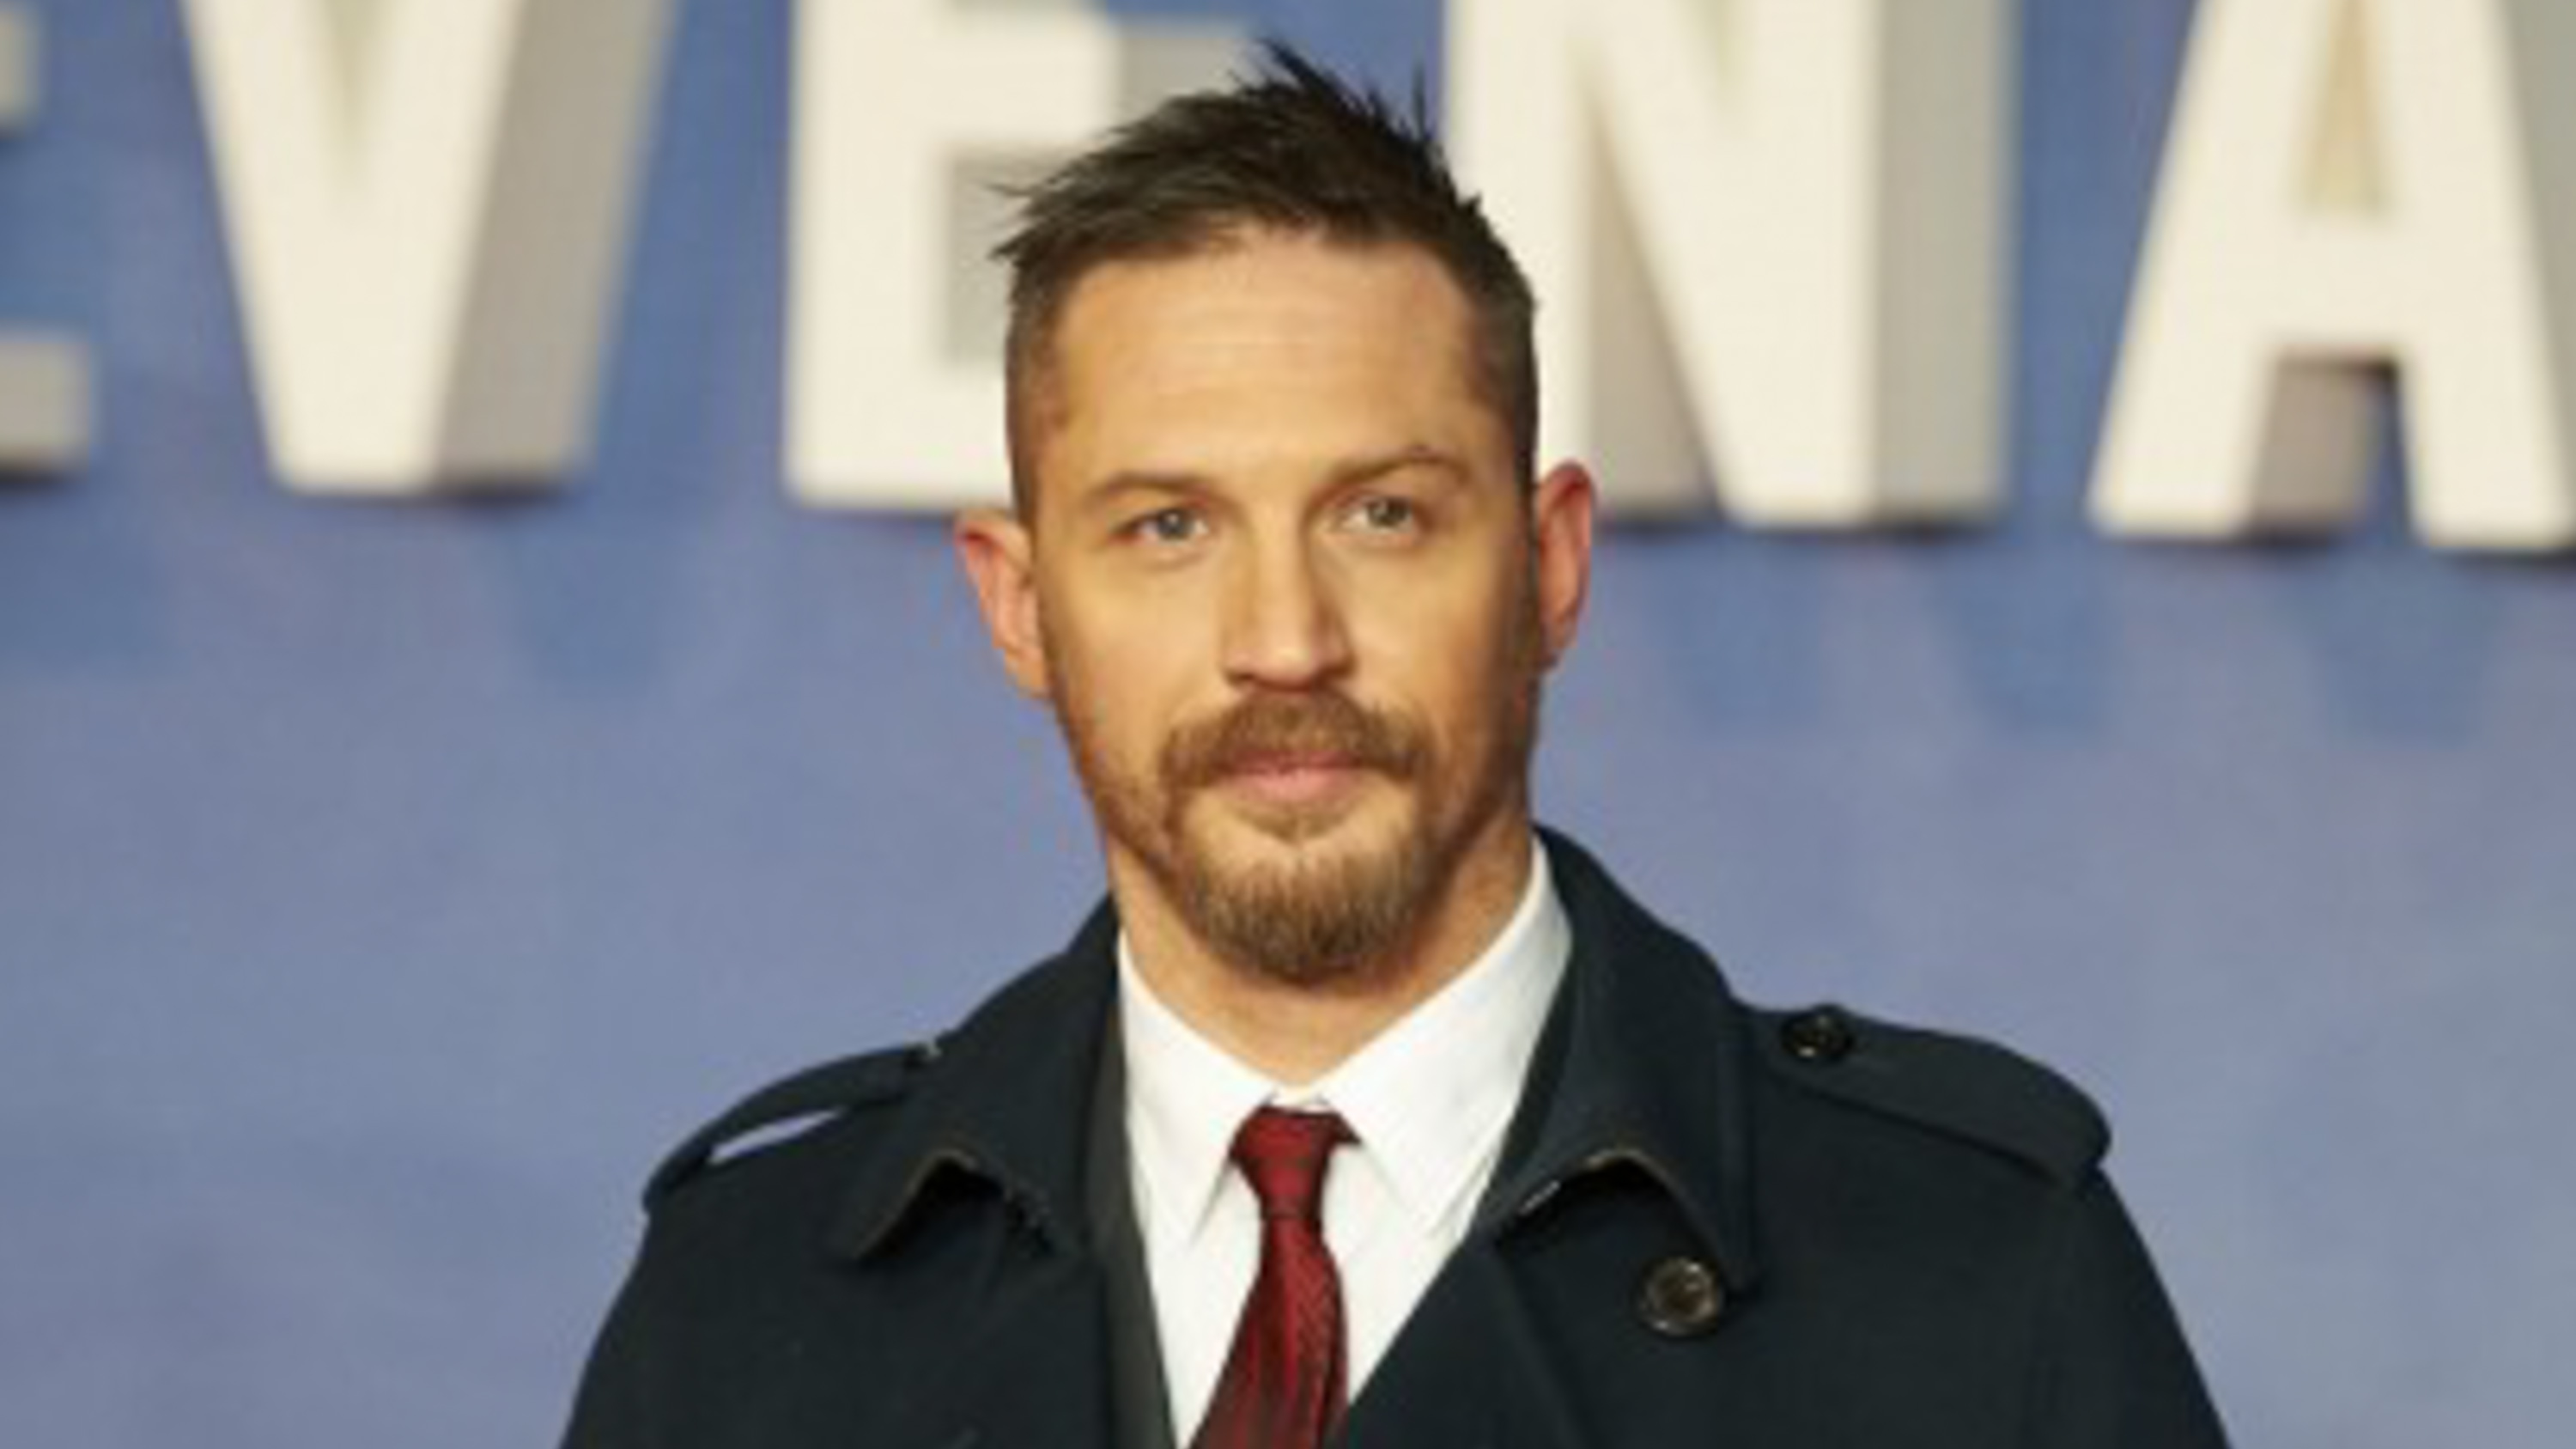 Tom Hardy will a Leonardo DiCaprio tattoo after losing bet